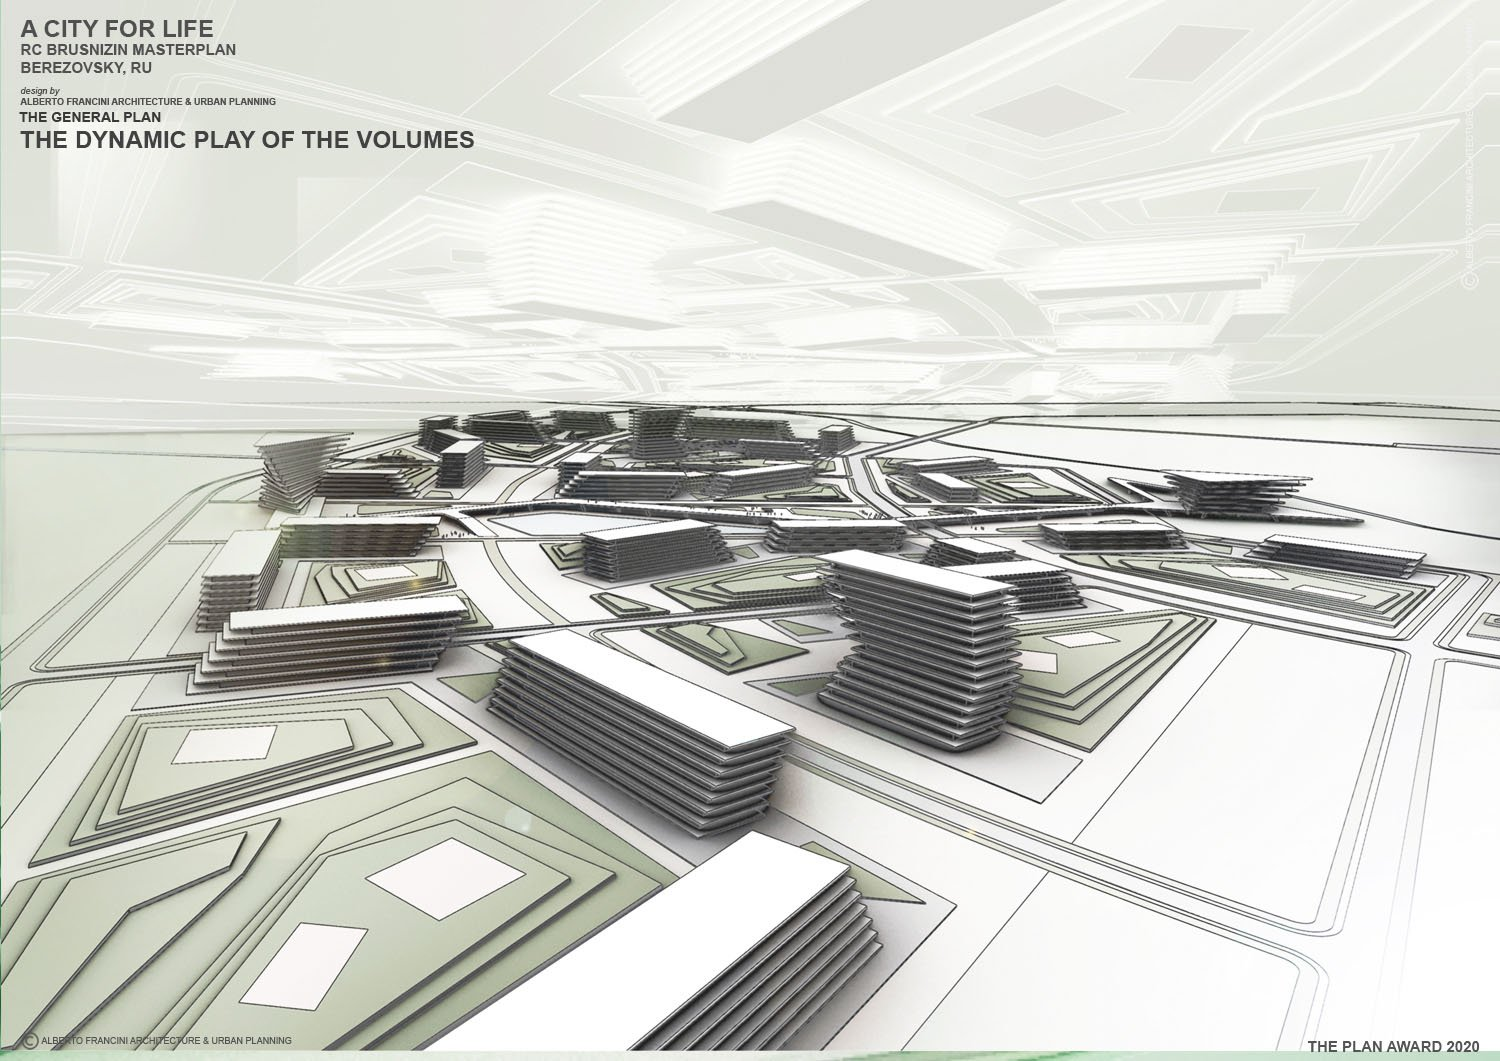 THE DYNAMIC PLAY OF THE VOLUMES ALBERTO FRANCINI ARCHITECTURE & URBANPLANNING}